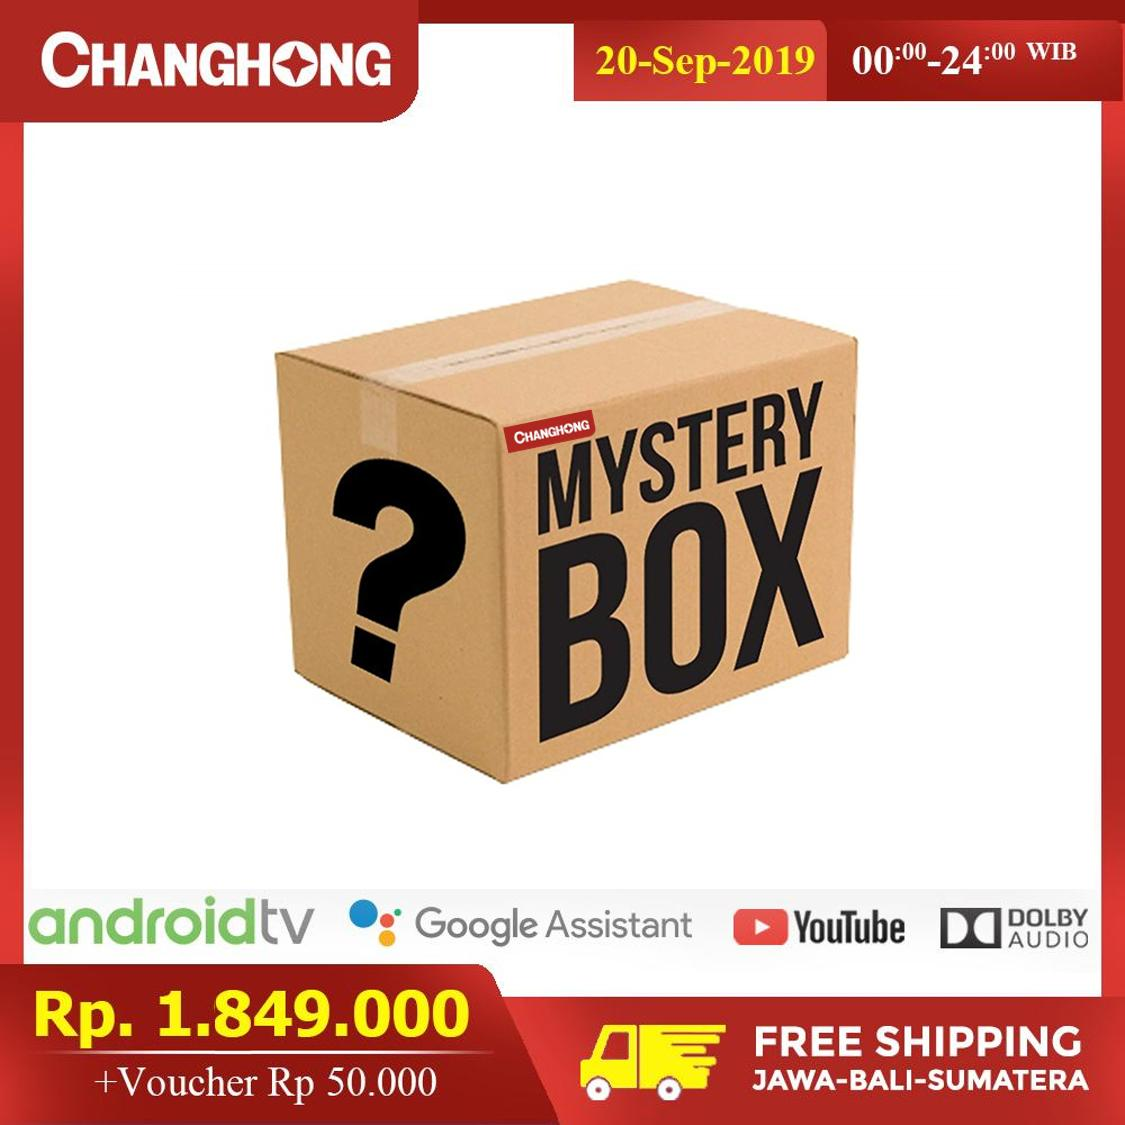 CHANGHONG ANDROID TV MYSTERY BOX